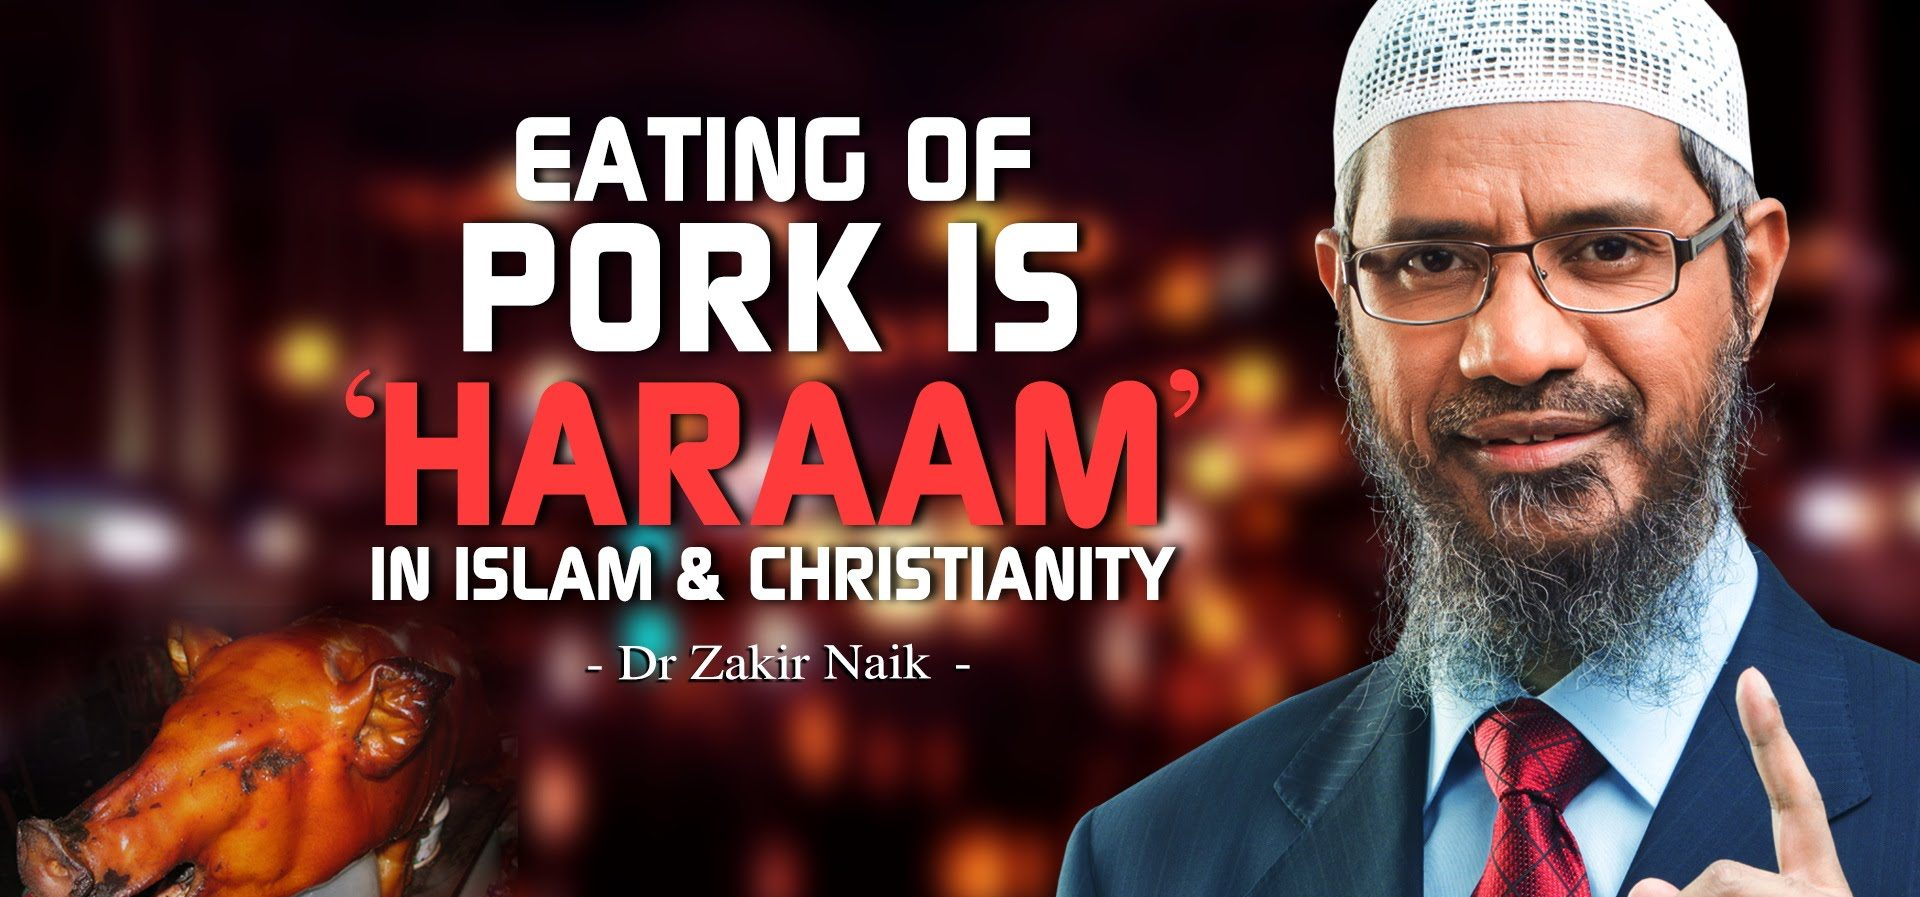 pork is haram in islam and christianity